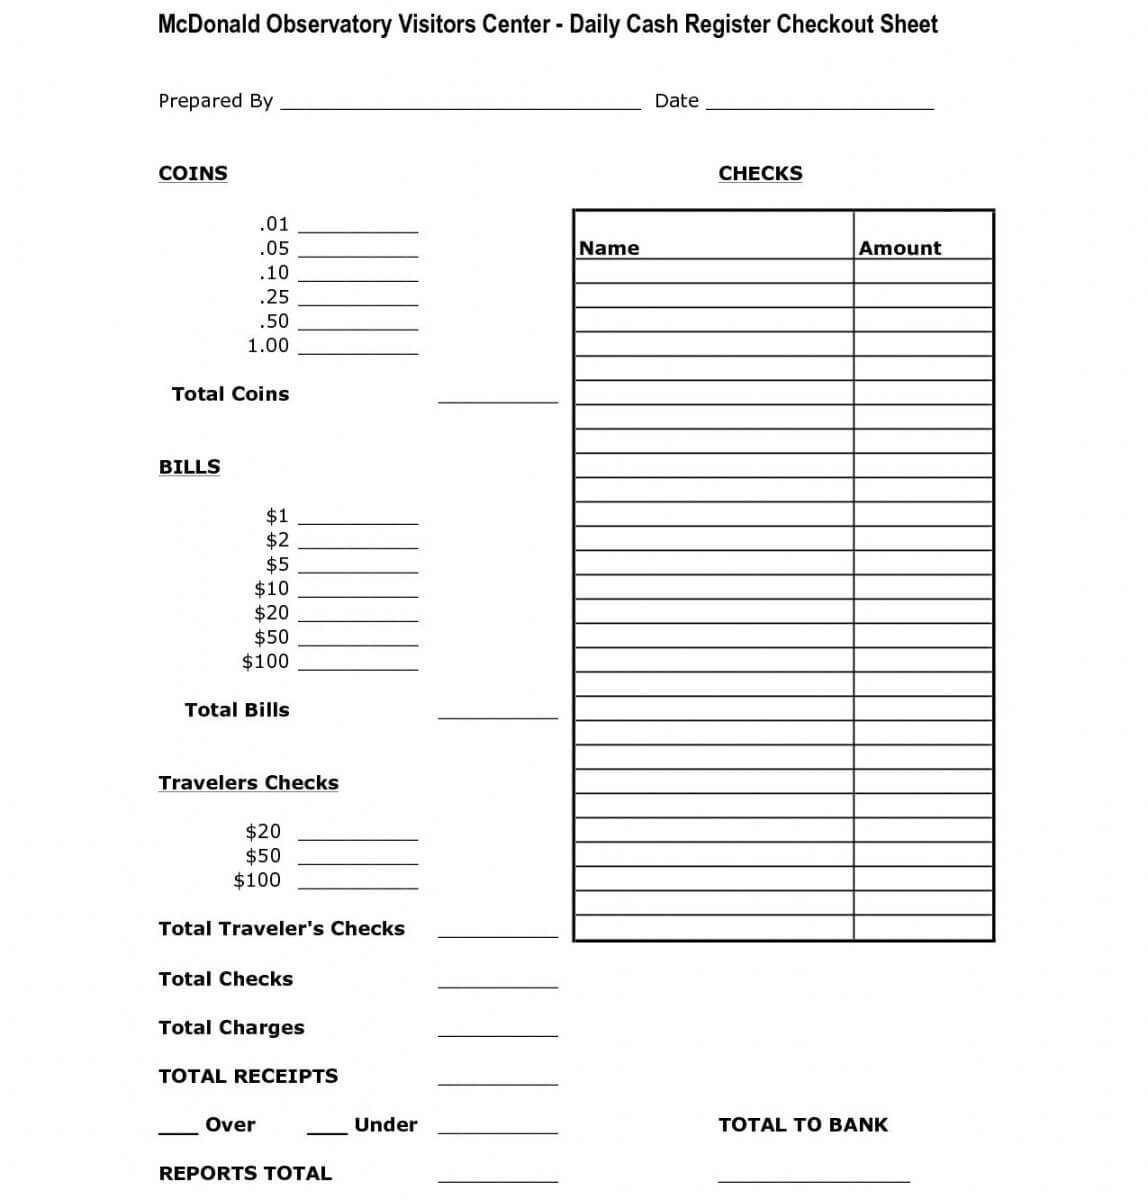 Free End Of Day Cash Register Report Template Professional Throughout End Of Day Cash Register Report Template